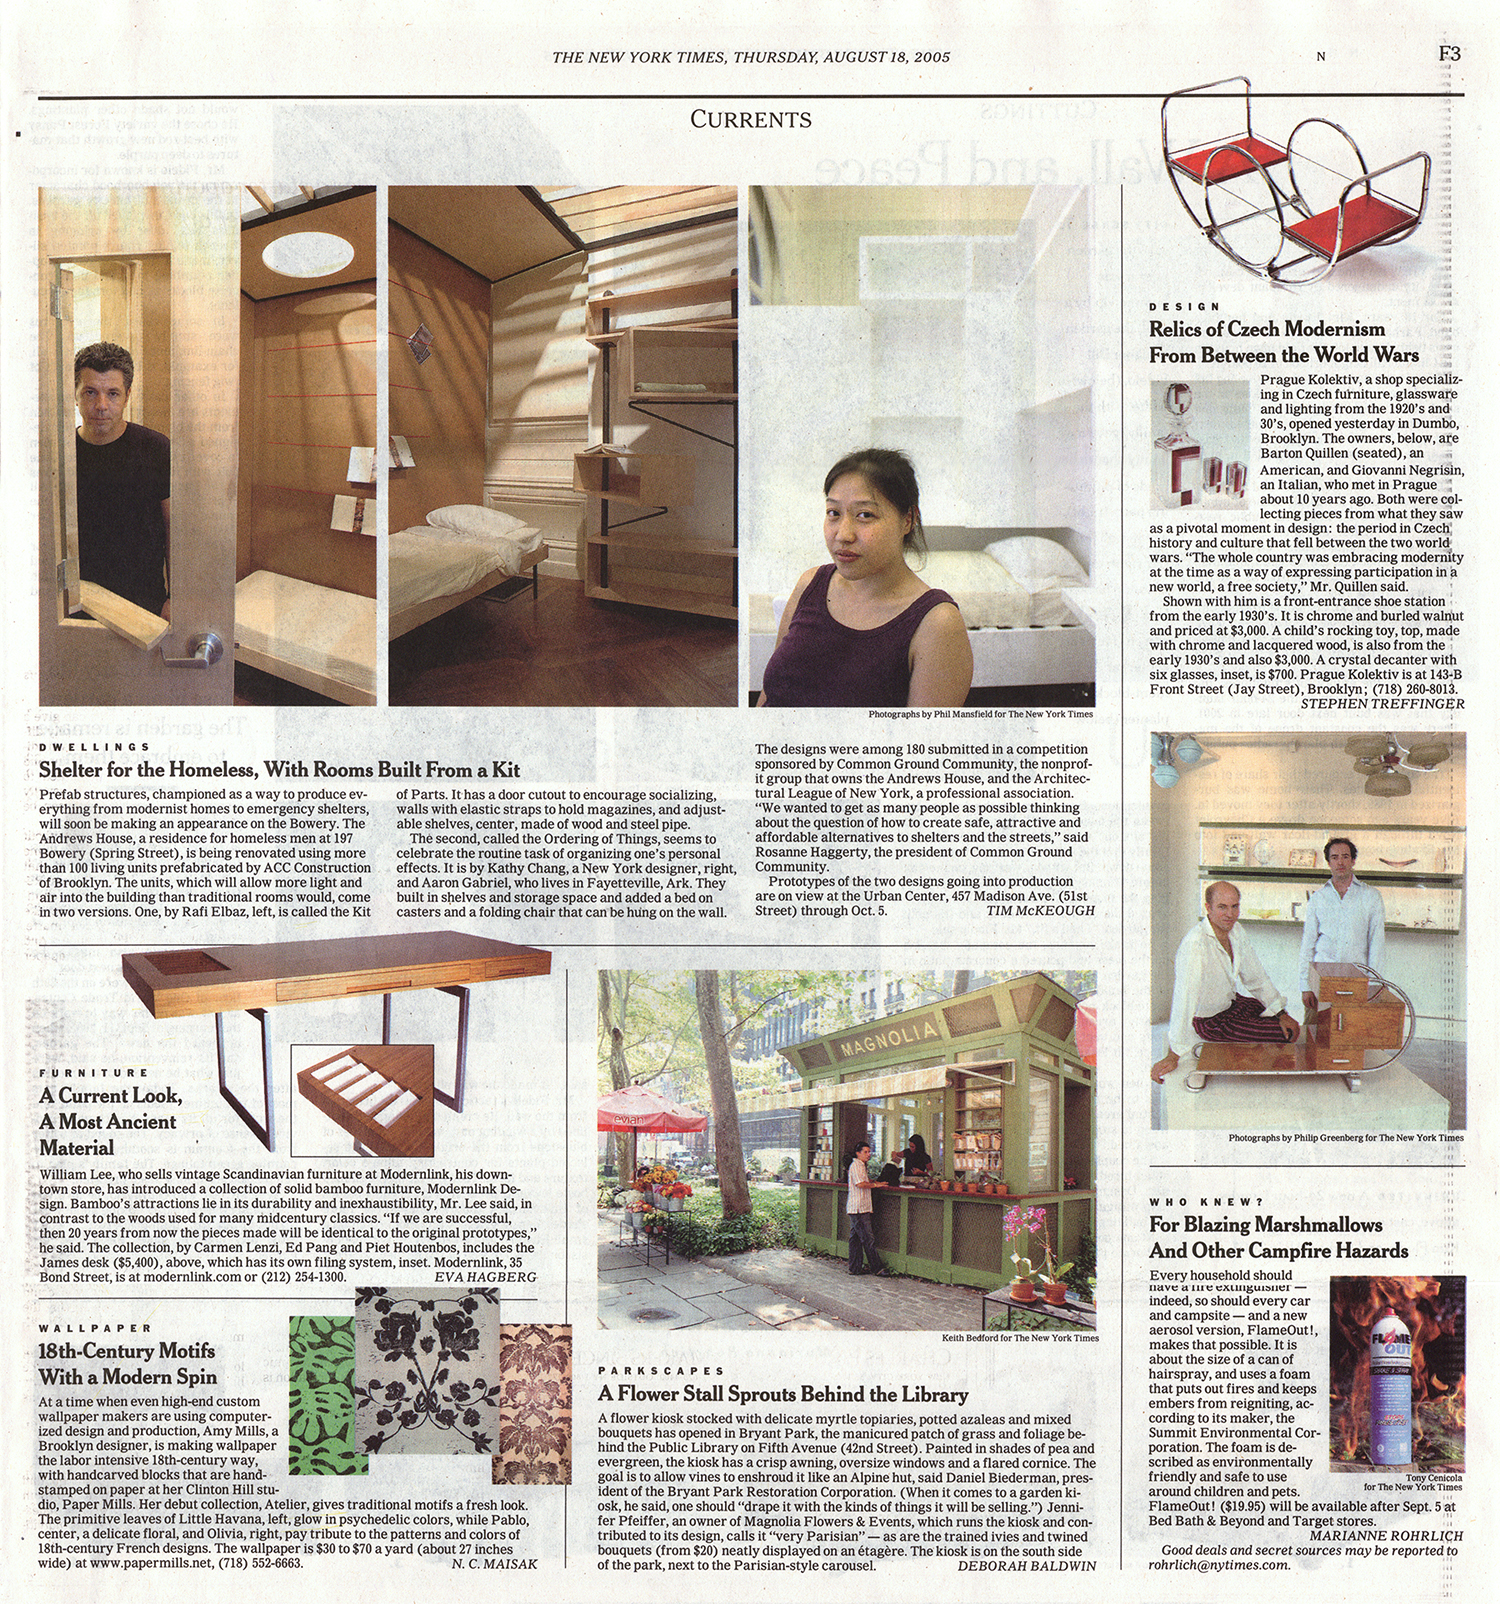 """The Onelink collection of furniture for modernlink designed by Piet Houtenbos featured in The New York Times article, """"A Current Look, A Most Ancient Material"""" by Eva Hagberg."""